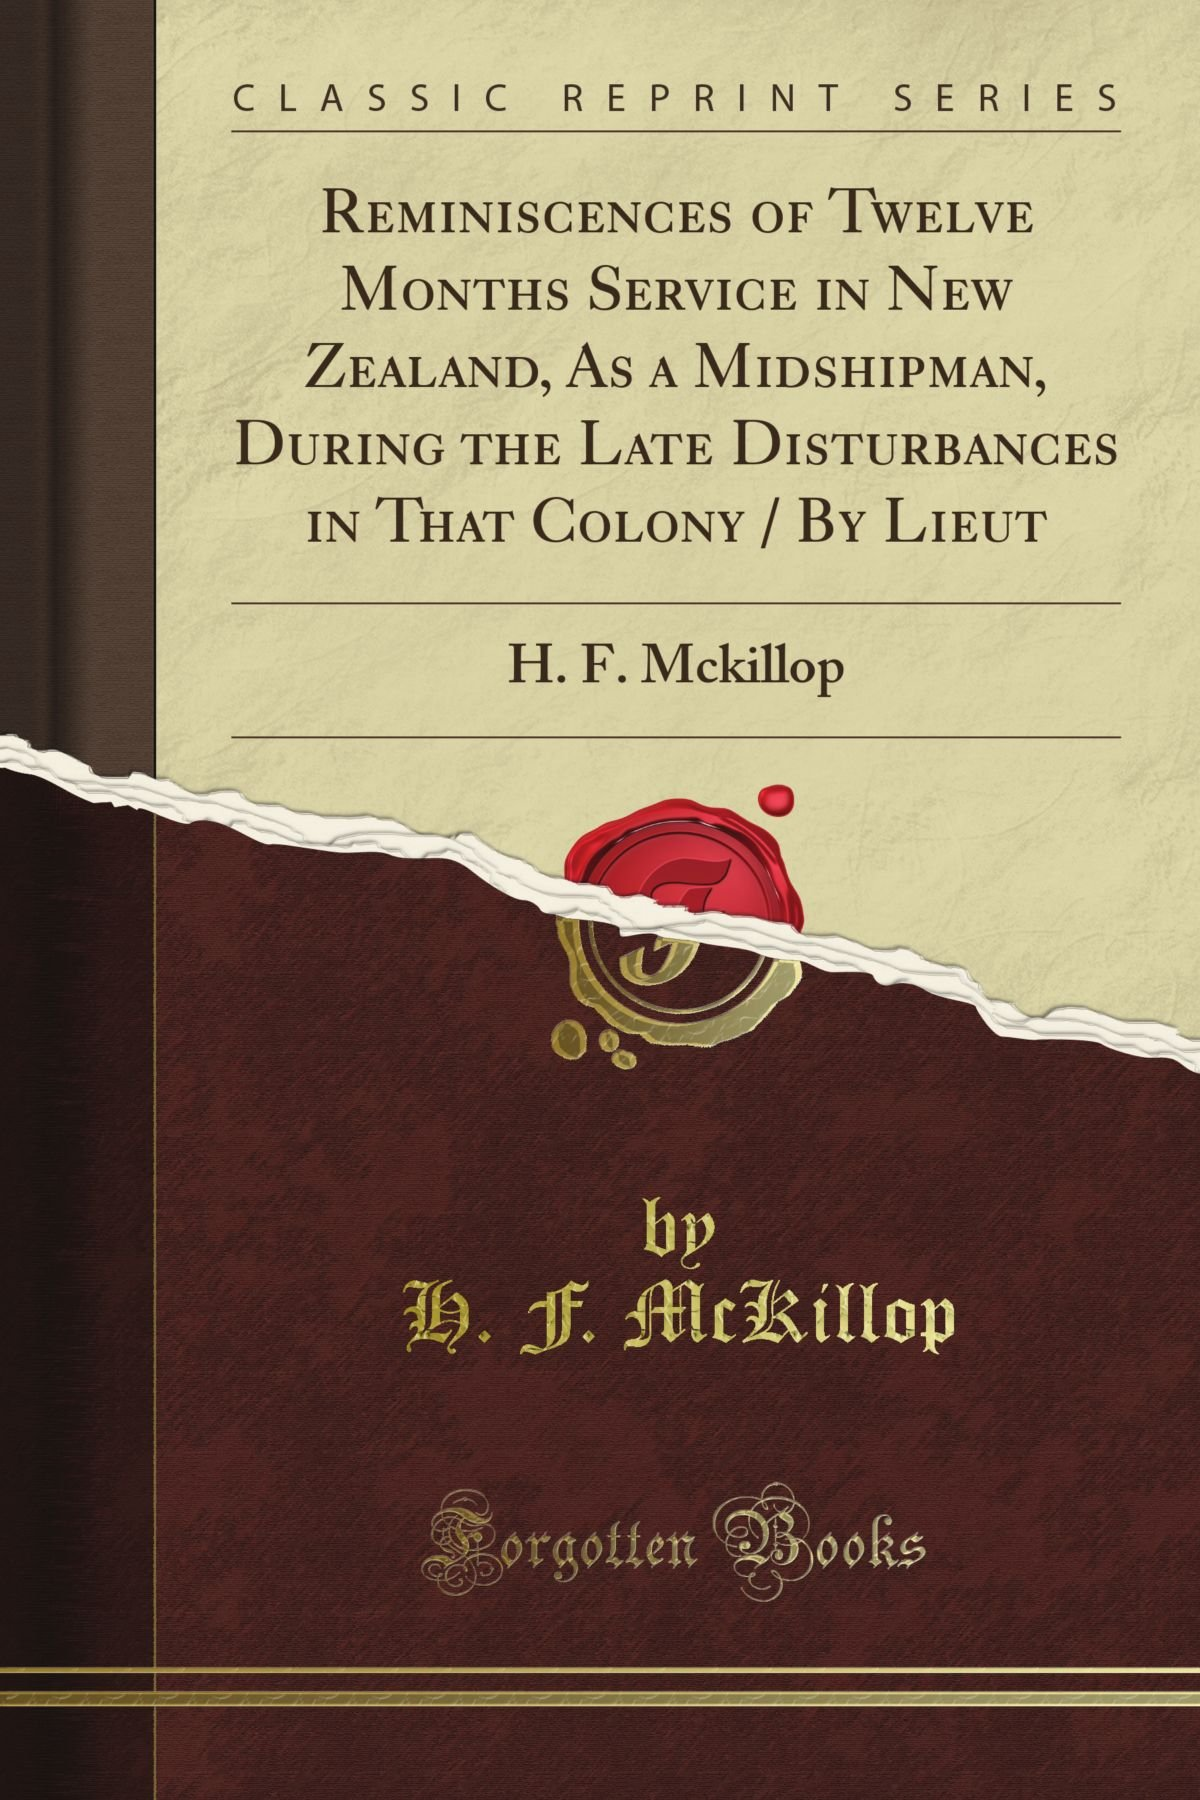 Reminiscences of Twelve Month's Service in New Zealand, As a Midshipman, During the Late Disturbances in That Colony / By Lieut: H. F. Mckillop (Classic Reprint) ebook